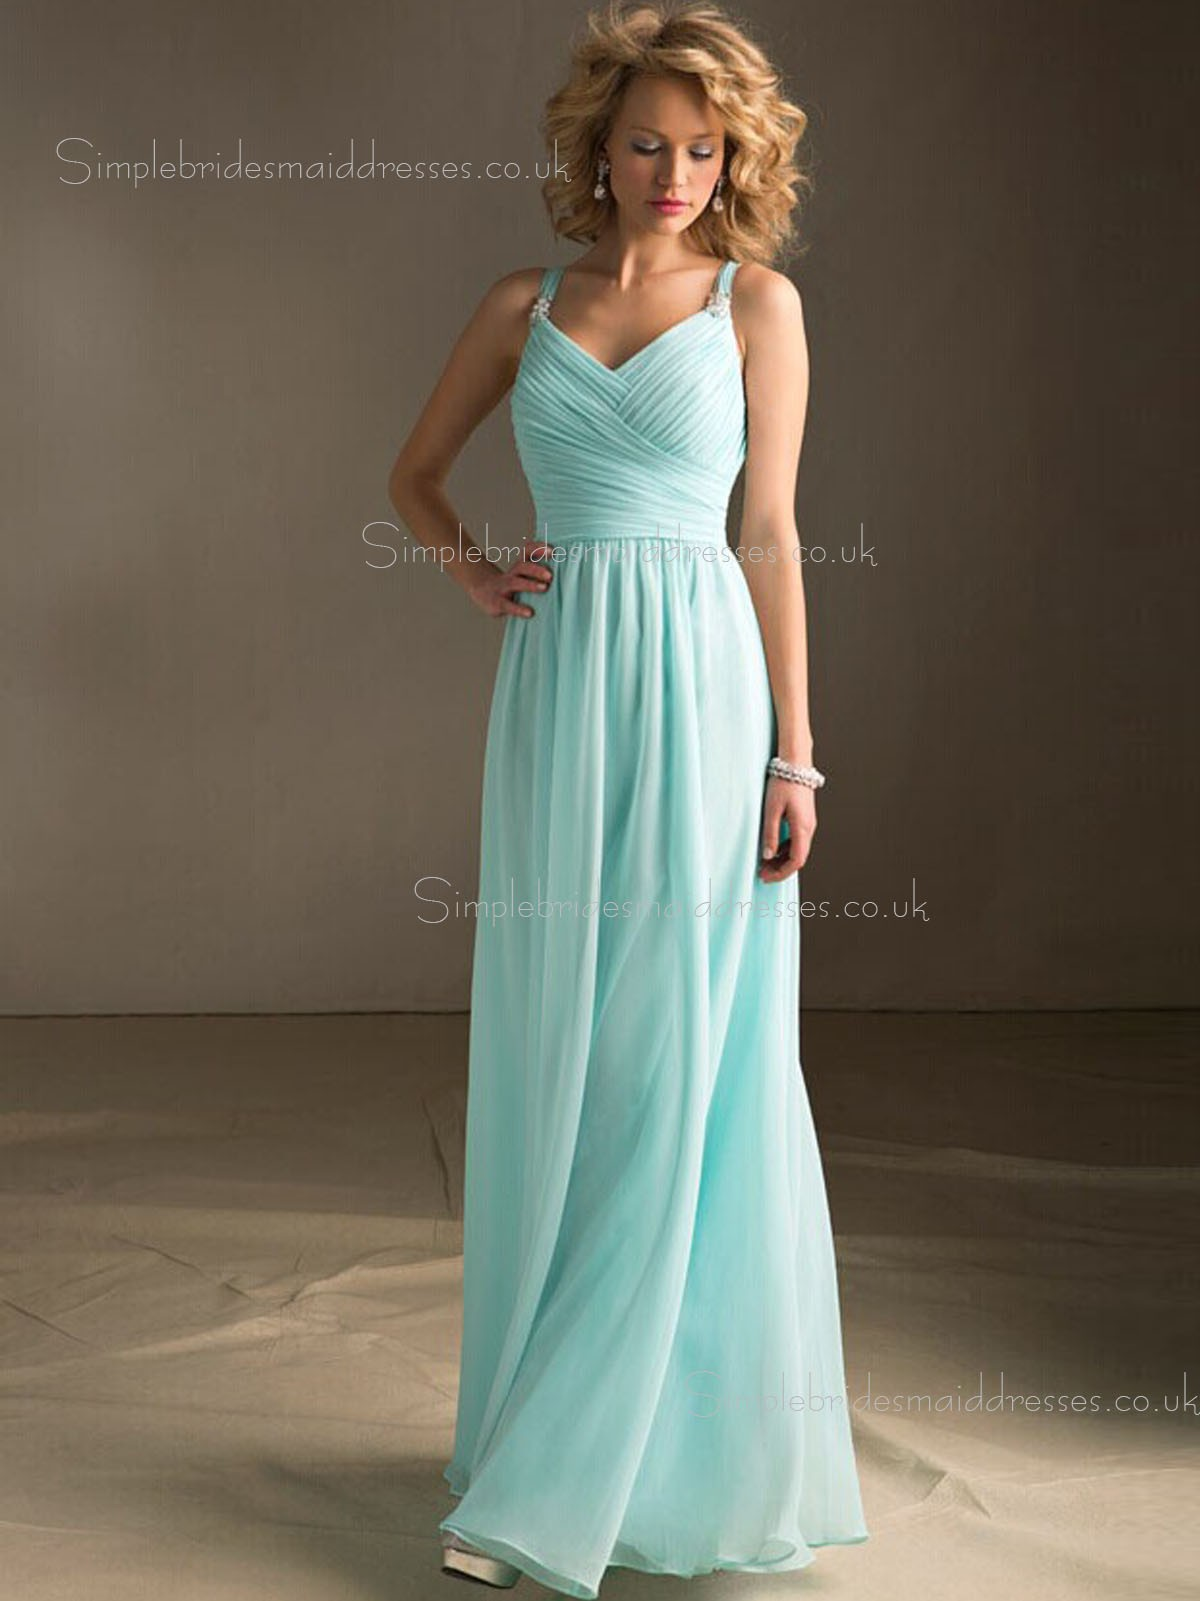 Cheap uk bridesmaid dresses bridesmaid dresses for Budget wedding dresses uk